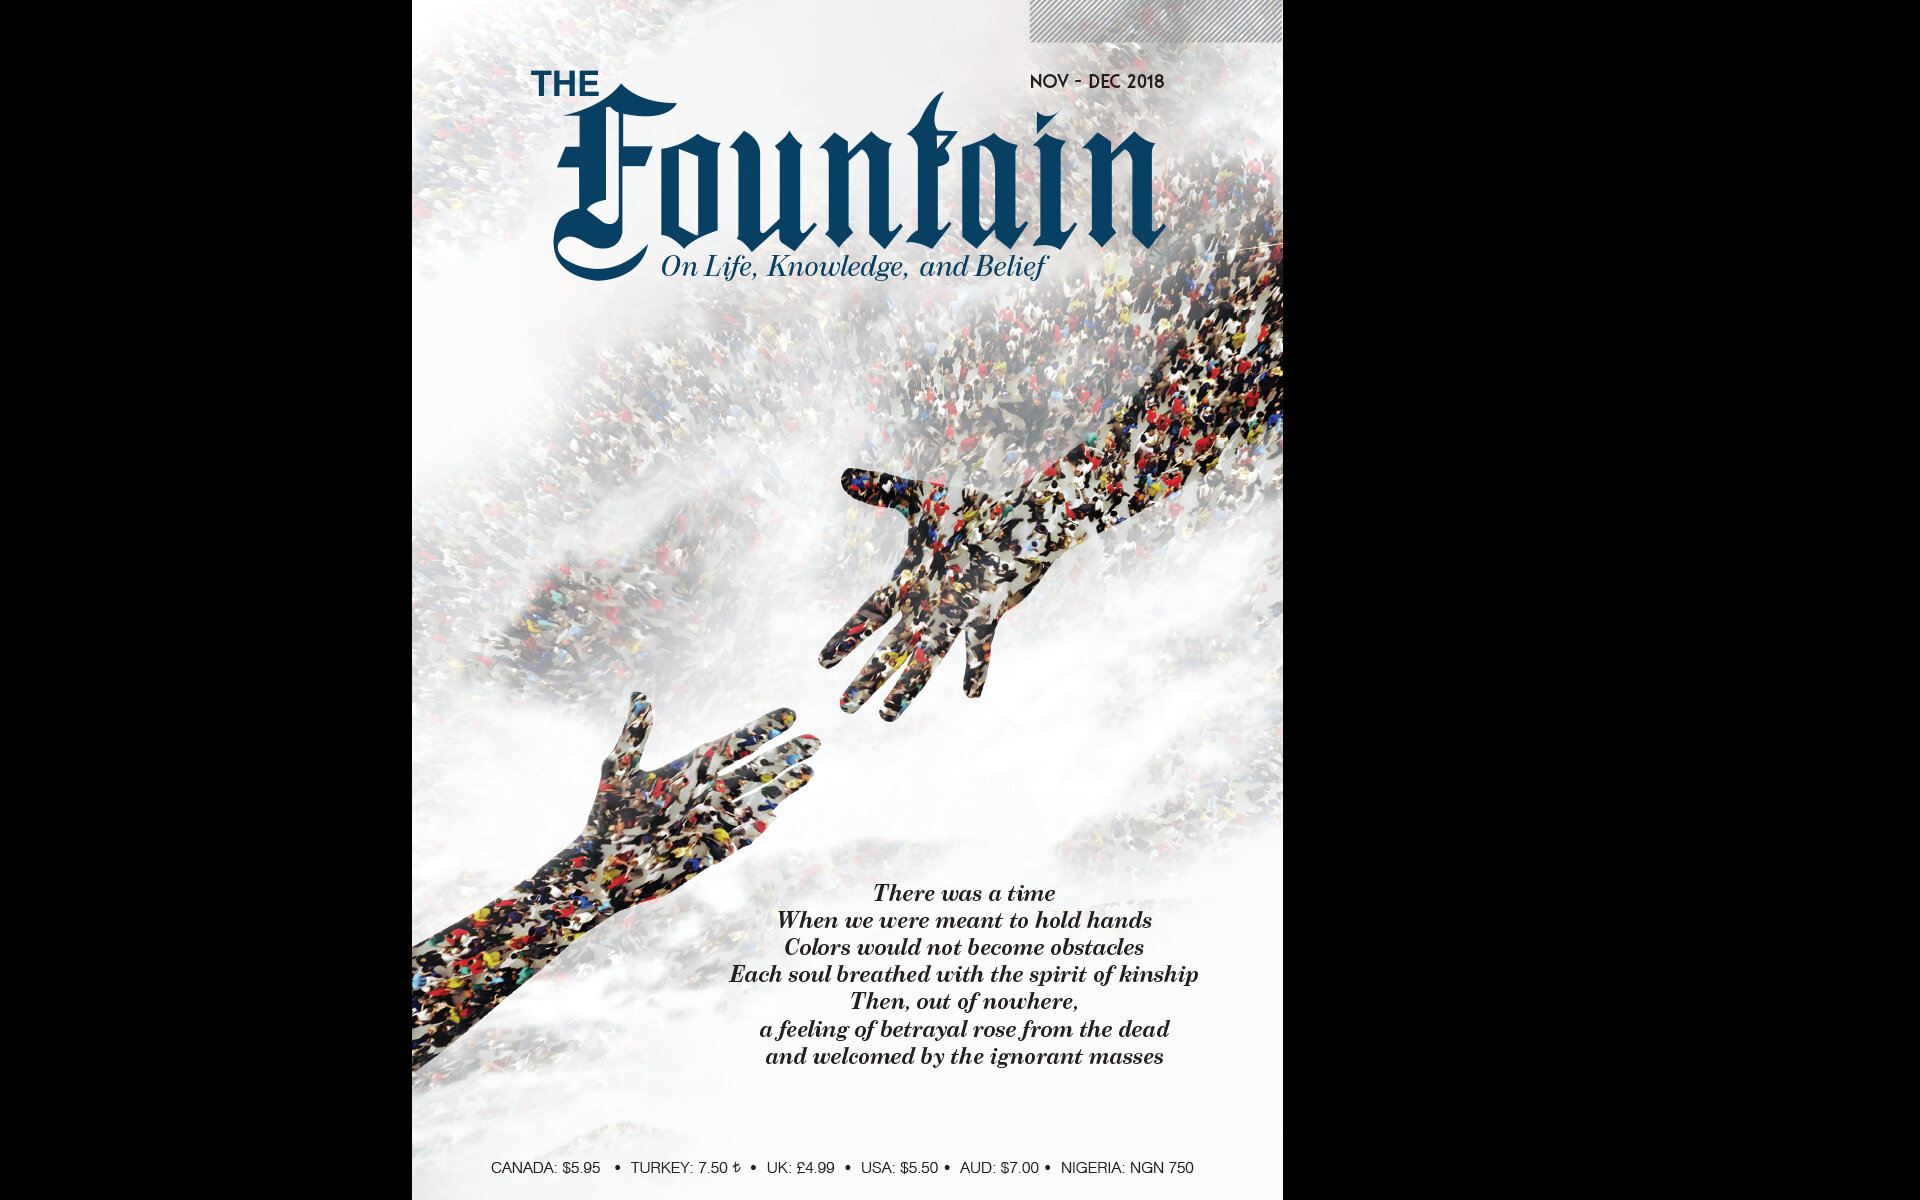 The Fountain Issue 126 (Nov - Dec 2018) Cover